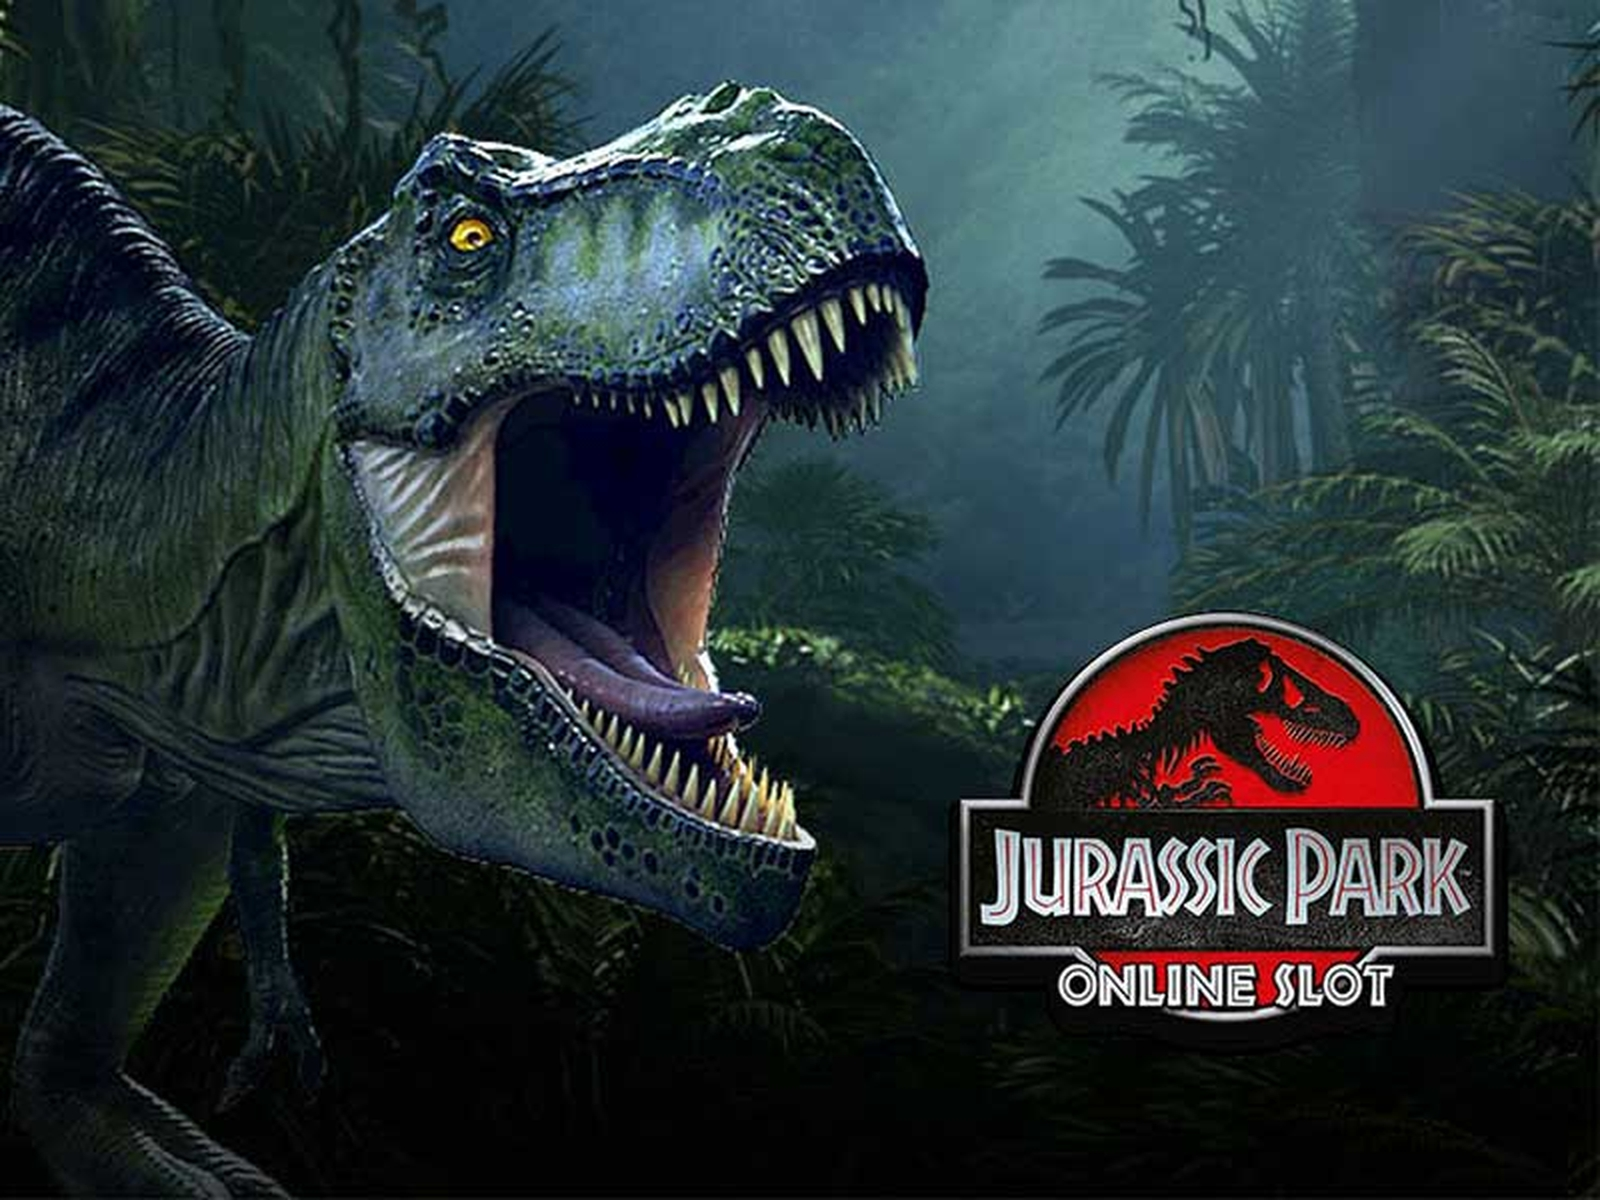 The Jurassic Park Online Slot Demo Game by Microgaming